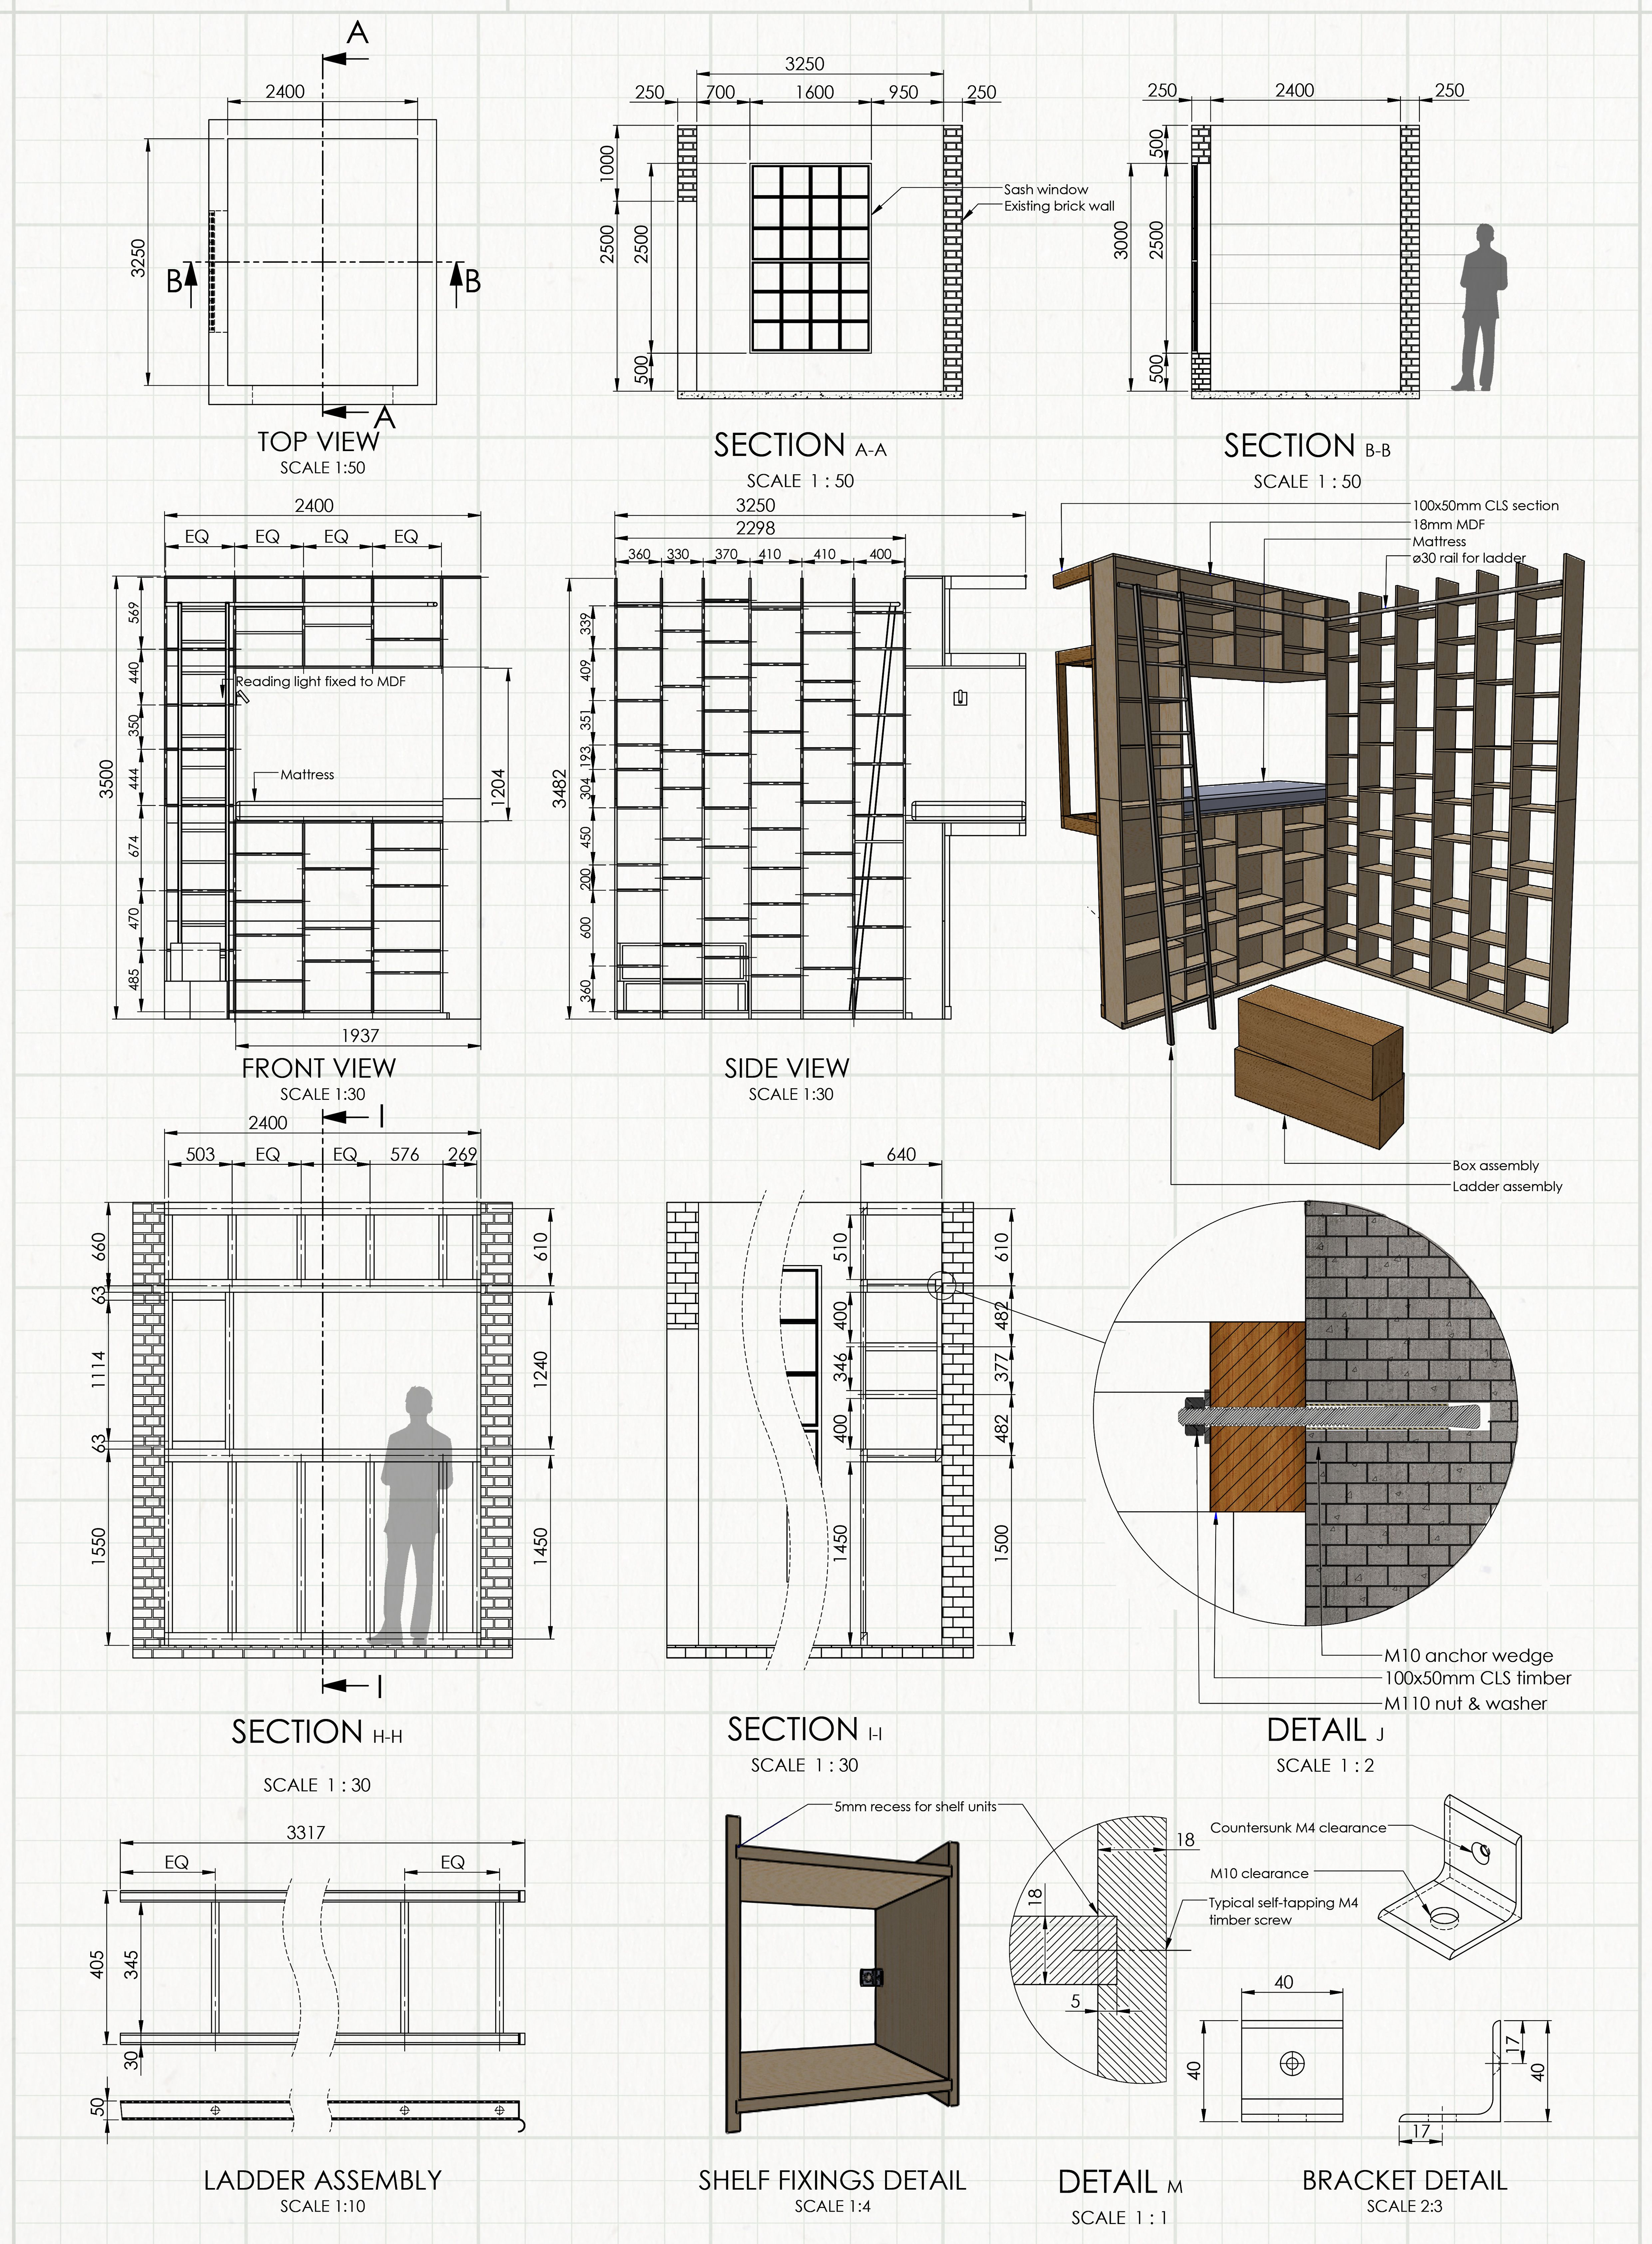 Home Library Assembly Drawing Design Construction Architecture Bookshelf Diy In 2020 Furniture Details Drawing Drawing Furniture Home Library Design